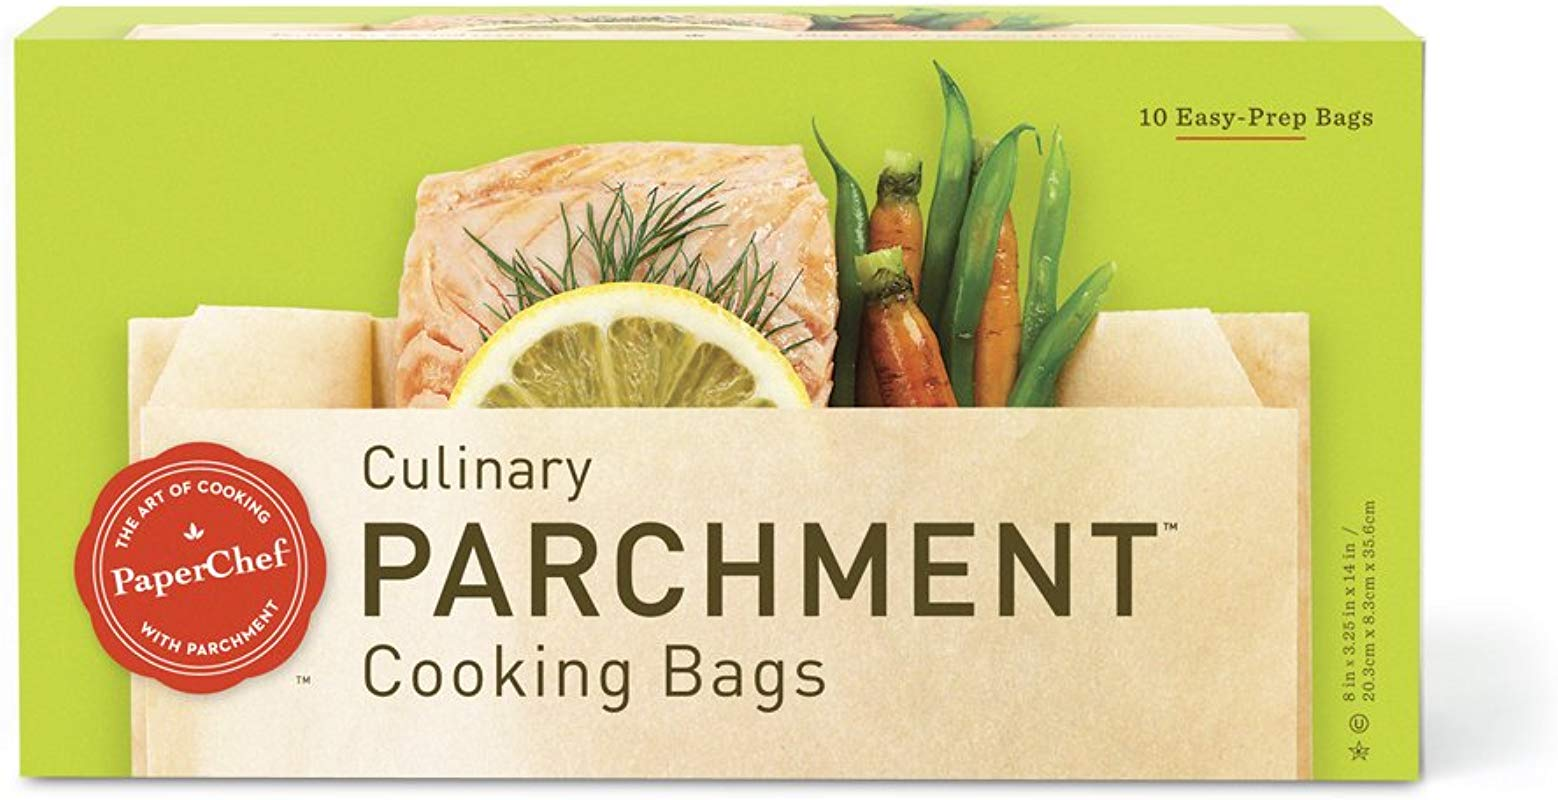 PaperChef Culinary Parchment Cooking Bags 10 Ct